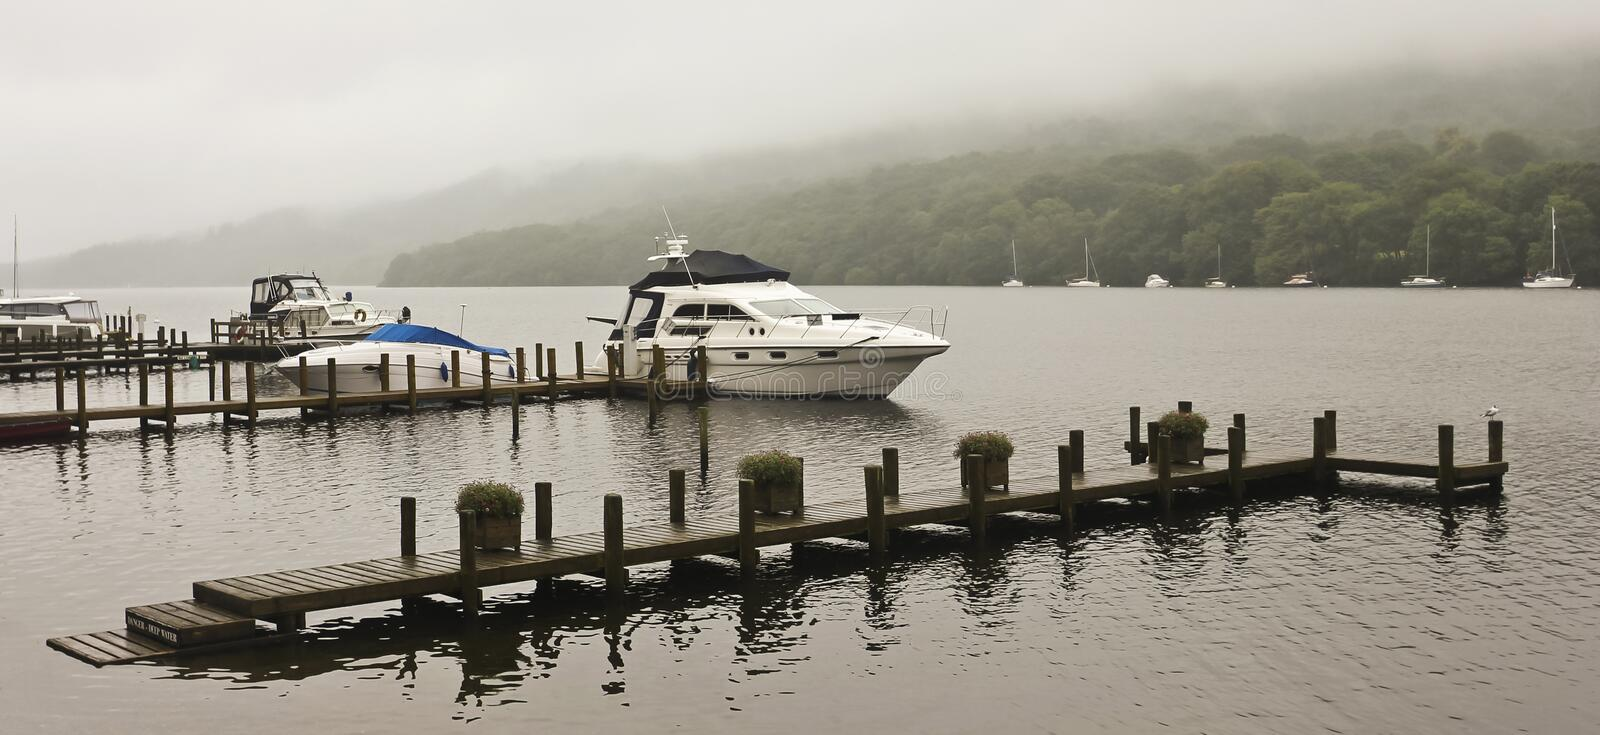 Download A Boat Dock On A Misty English Lake Stock Image - Image of lakes, countryside: 26560037